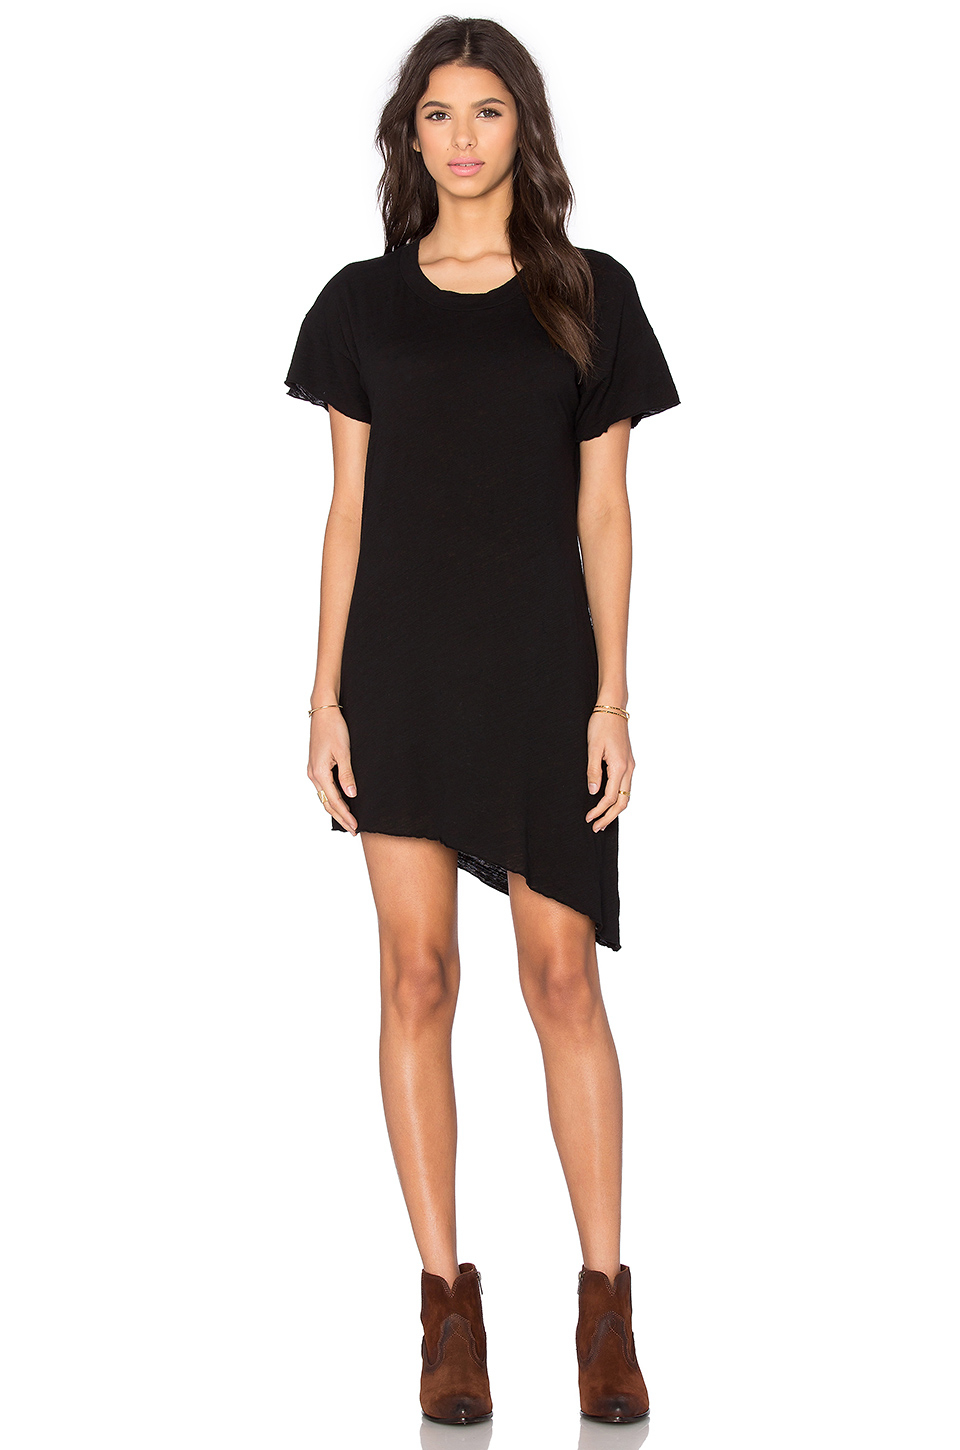 Find cotton tee shirt dresses at ShopStyle. Shop the latest collection of cotton tee shirt dresses from the most popular stores - all in one place.